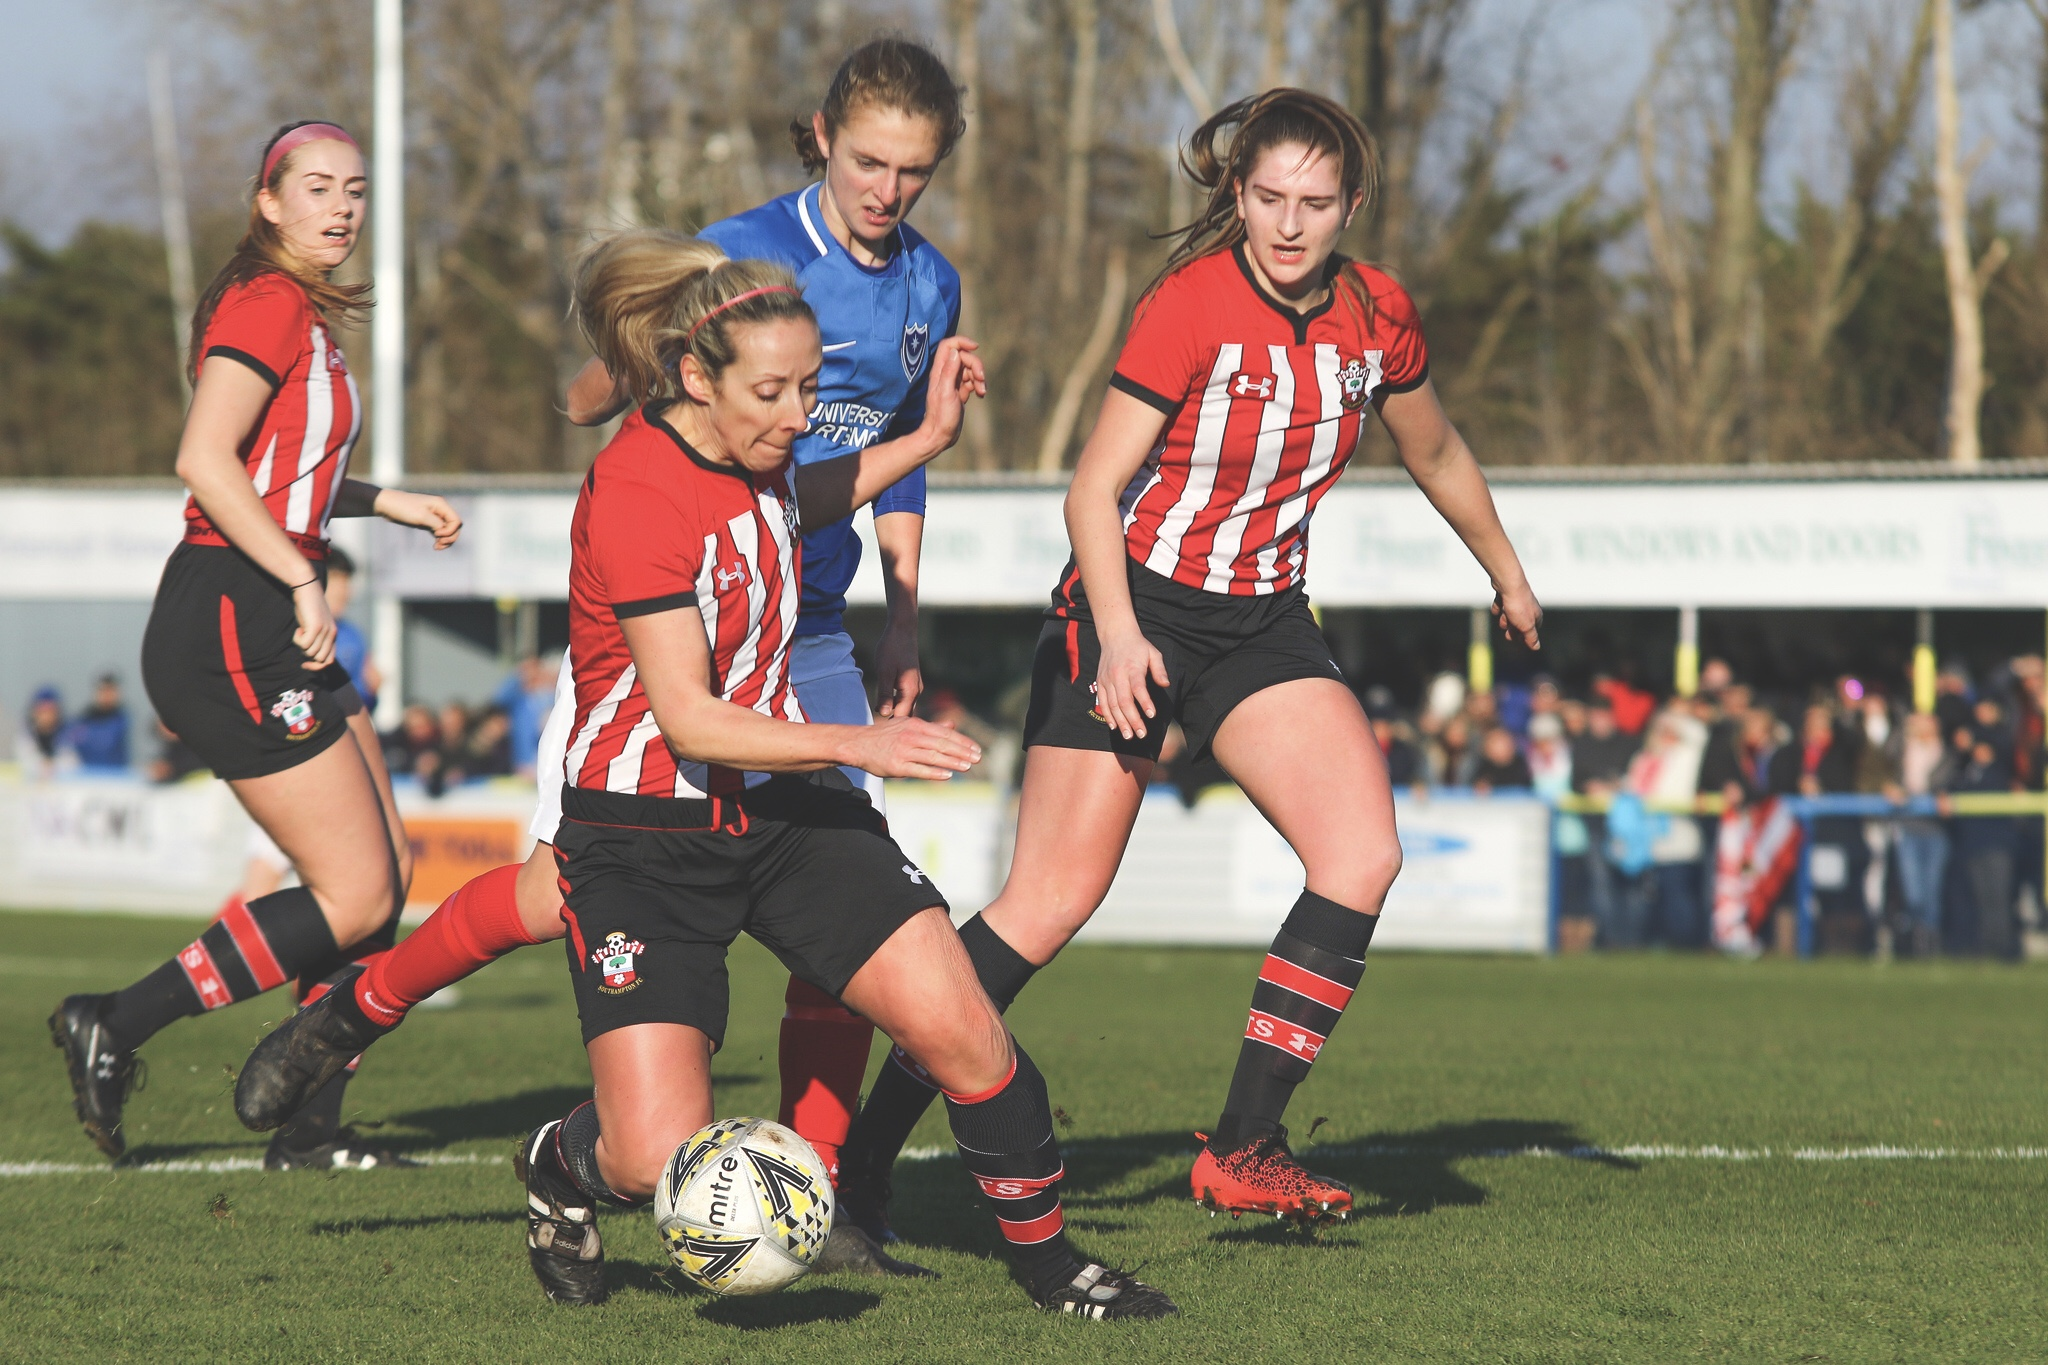 Shelly Provan shields the ball from Shannon Albuery. Photo by Jordan Hampton.